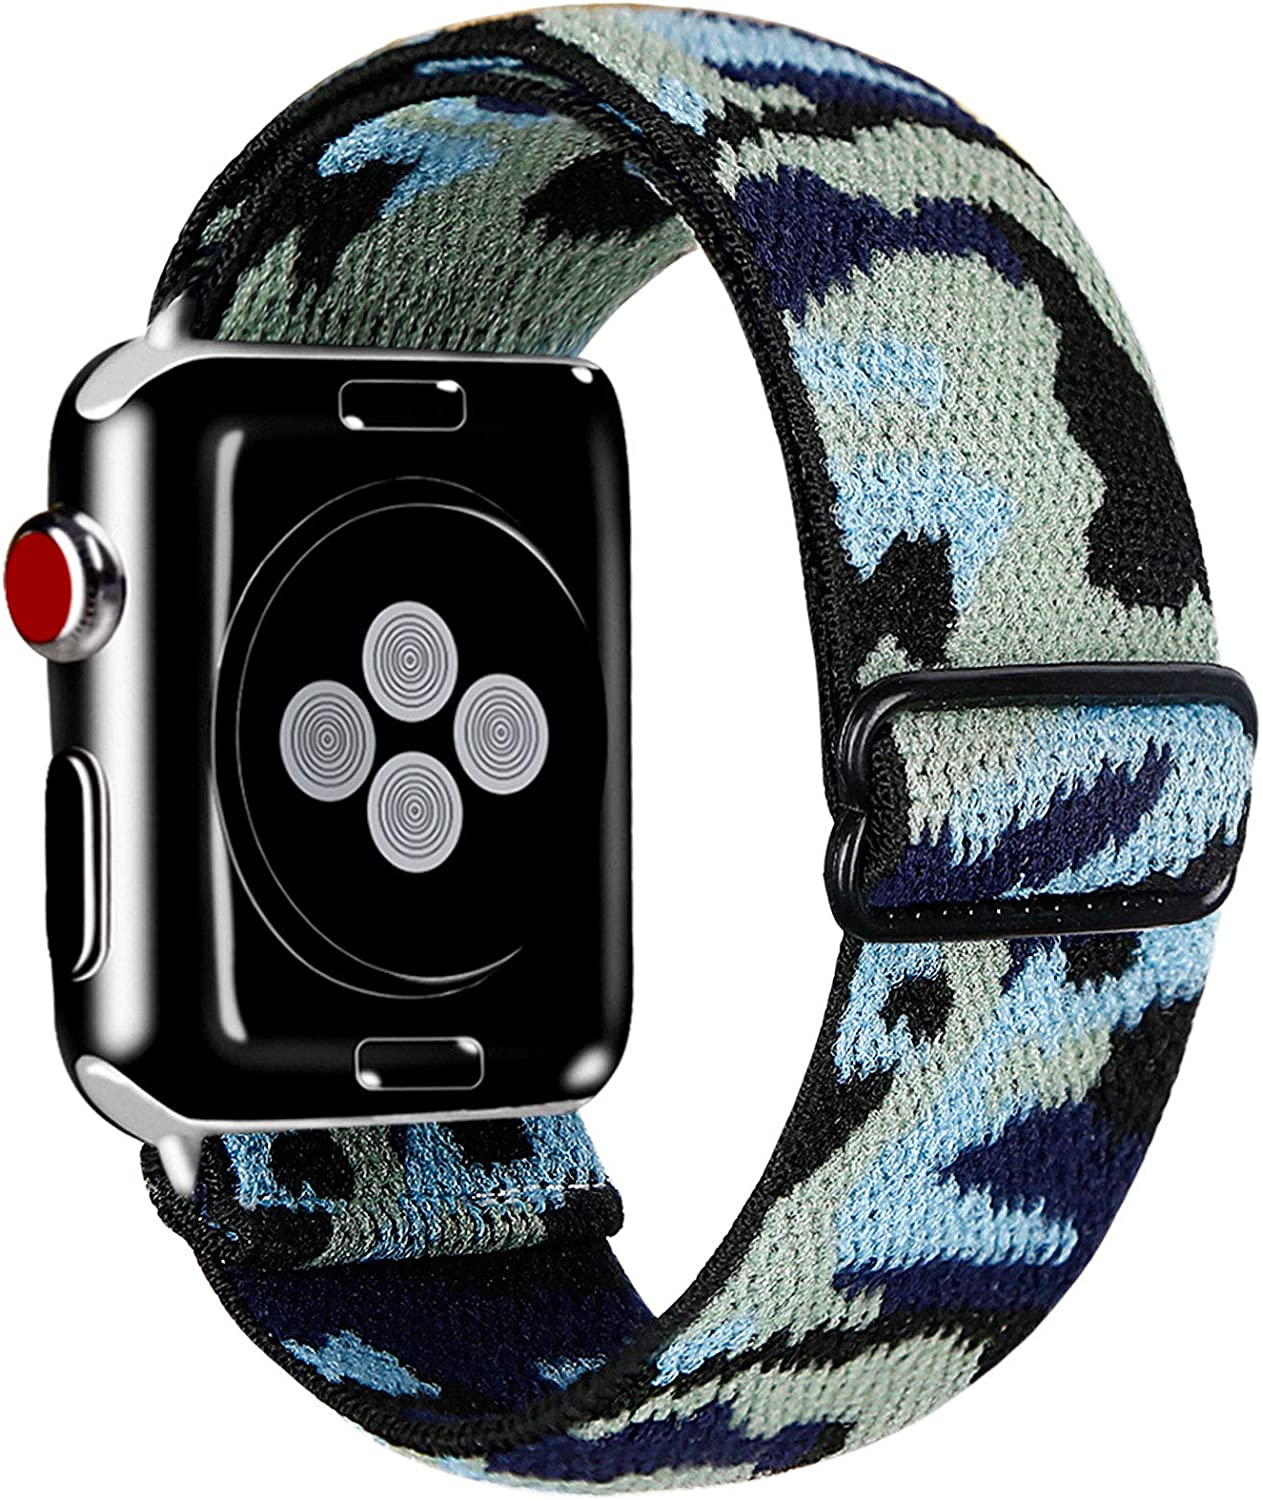 Kraftychix Adjustable Elastic Watch Band Compatible with Apple Watch 38mm/40mm/42mm/44mm,Soft Stretch Bracelet Women Strap Replacement Wristband for Iwatch Series SE/7/6/5/4/3/2/1